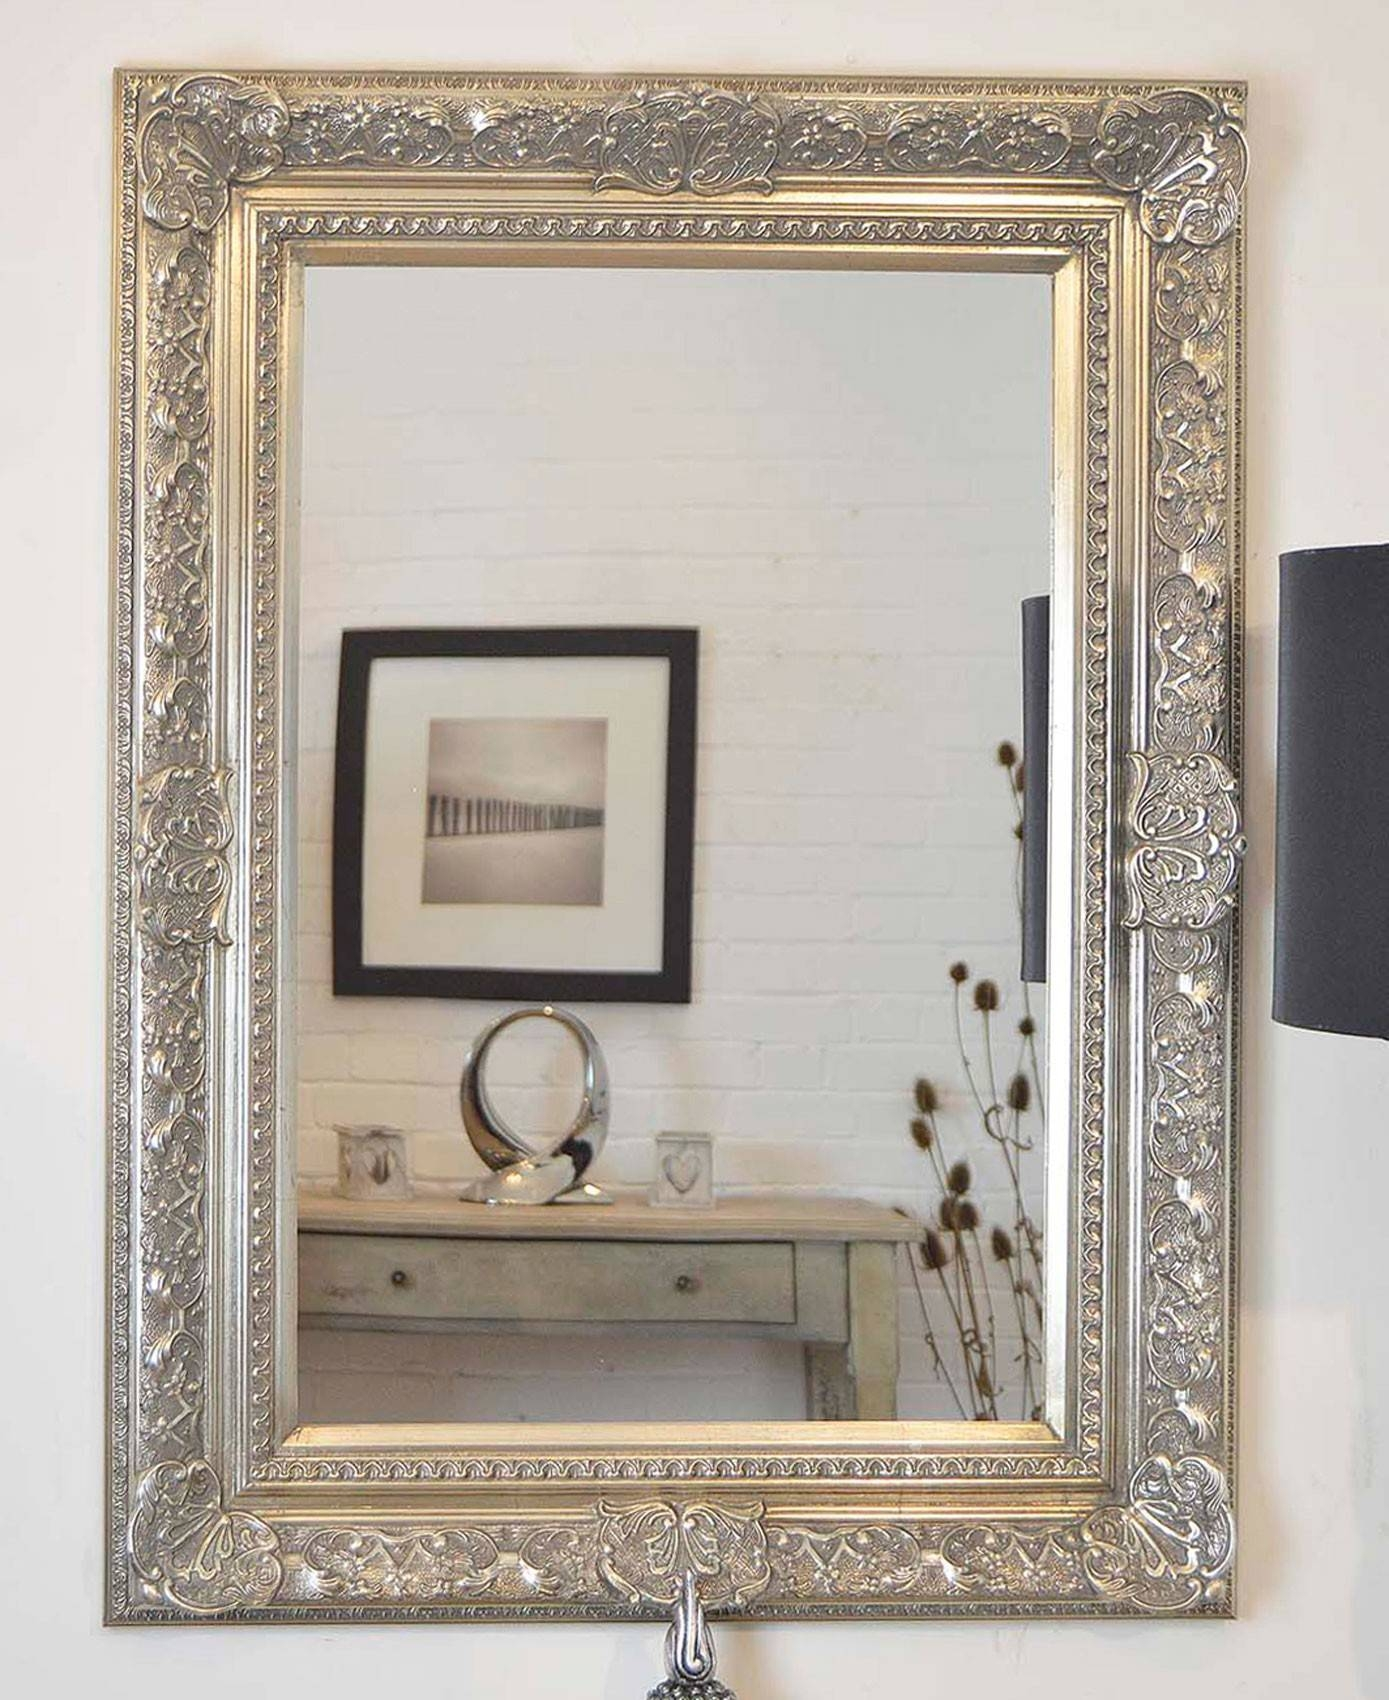 Cheap Large Wall Mirrors 79 Breathtaking Decor Plus Large Wall regarding Silver Ornate Wall Mirrors (Image 7 of 25)